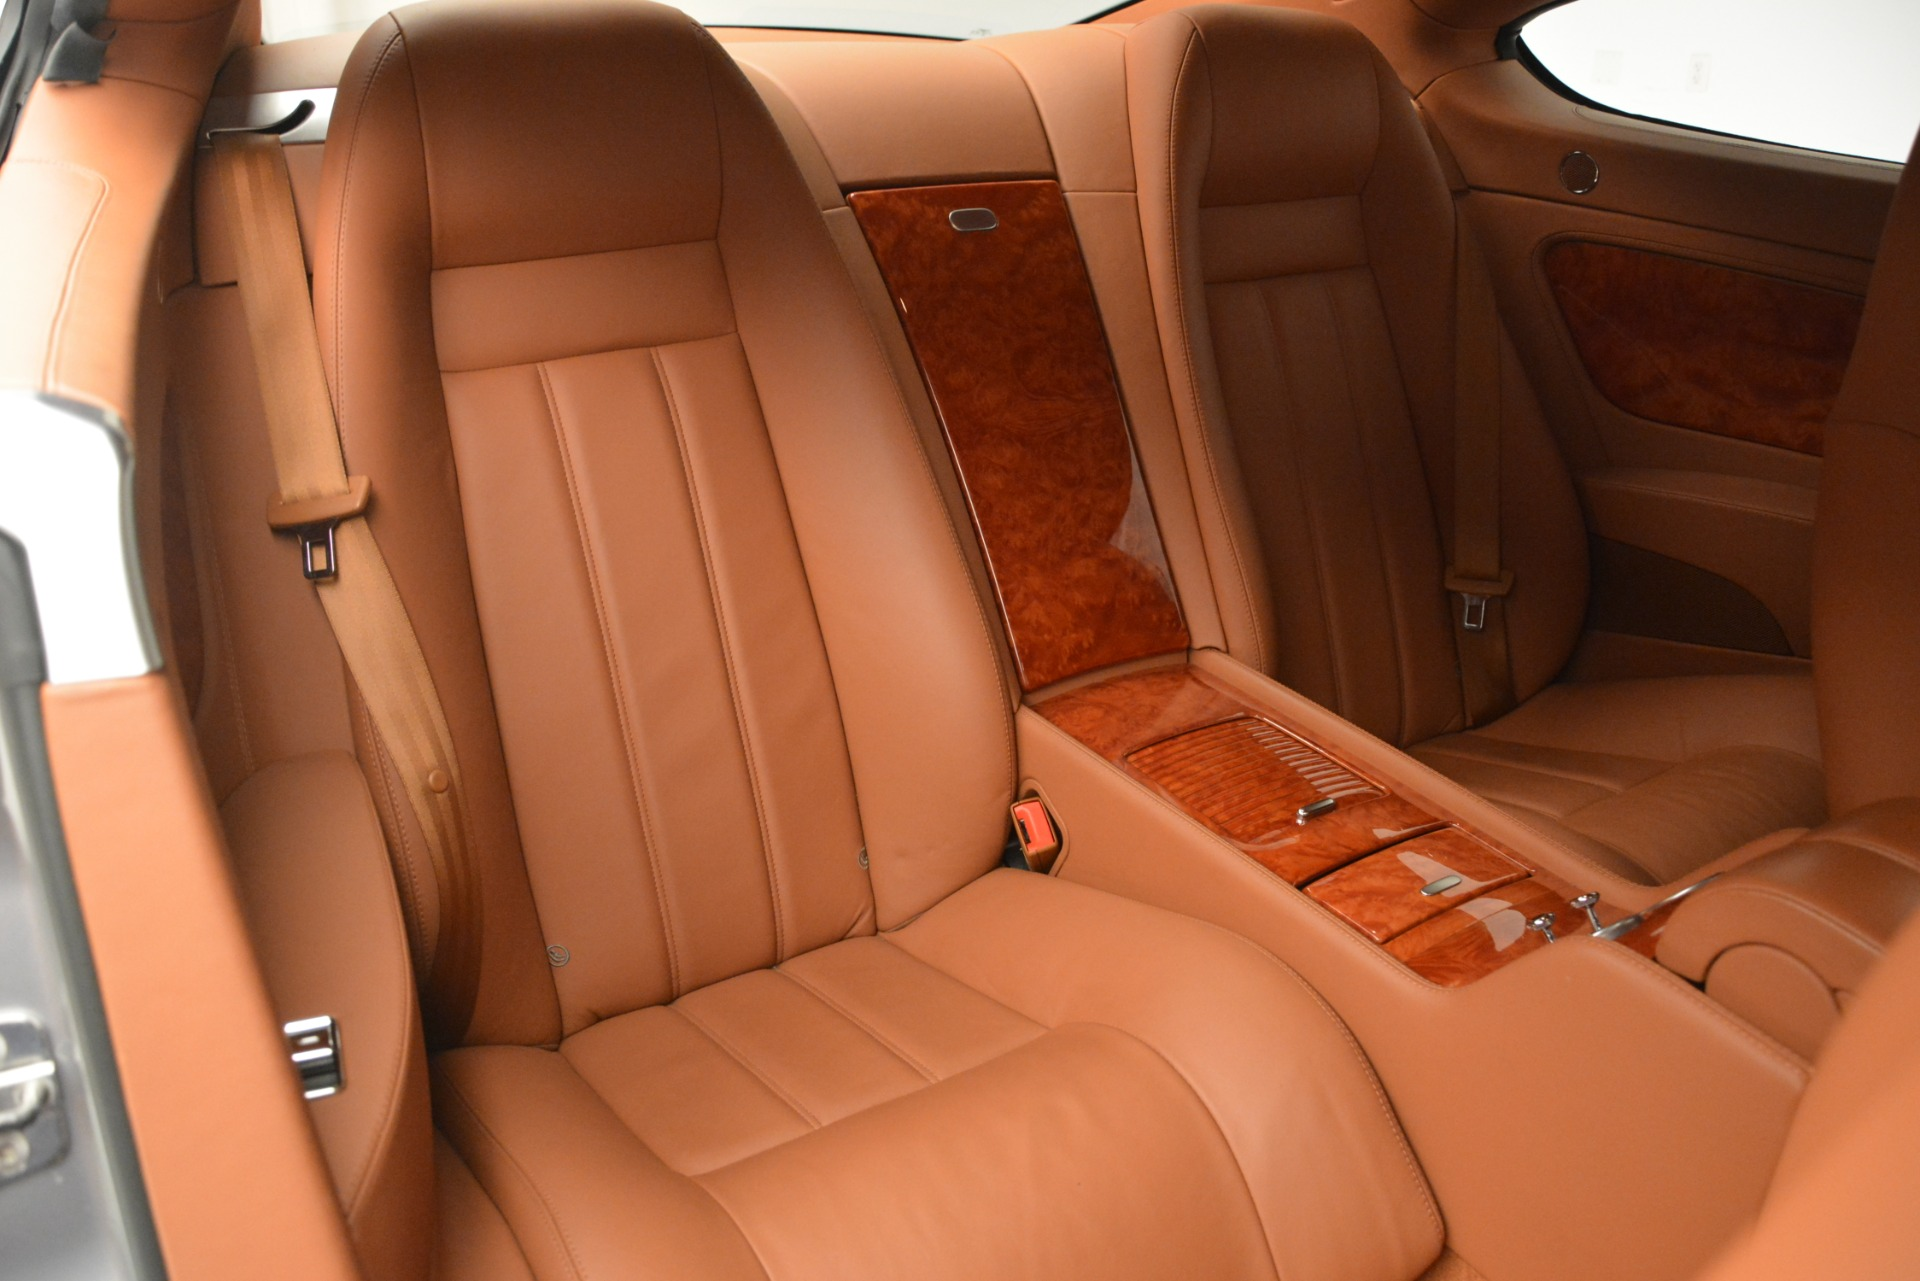 Used 2005 Bentley Continental GT GT Turbo For Sale In Westport, CT 2726_p28